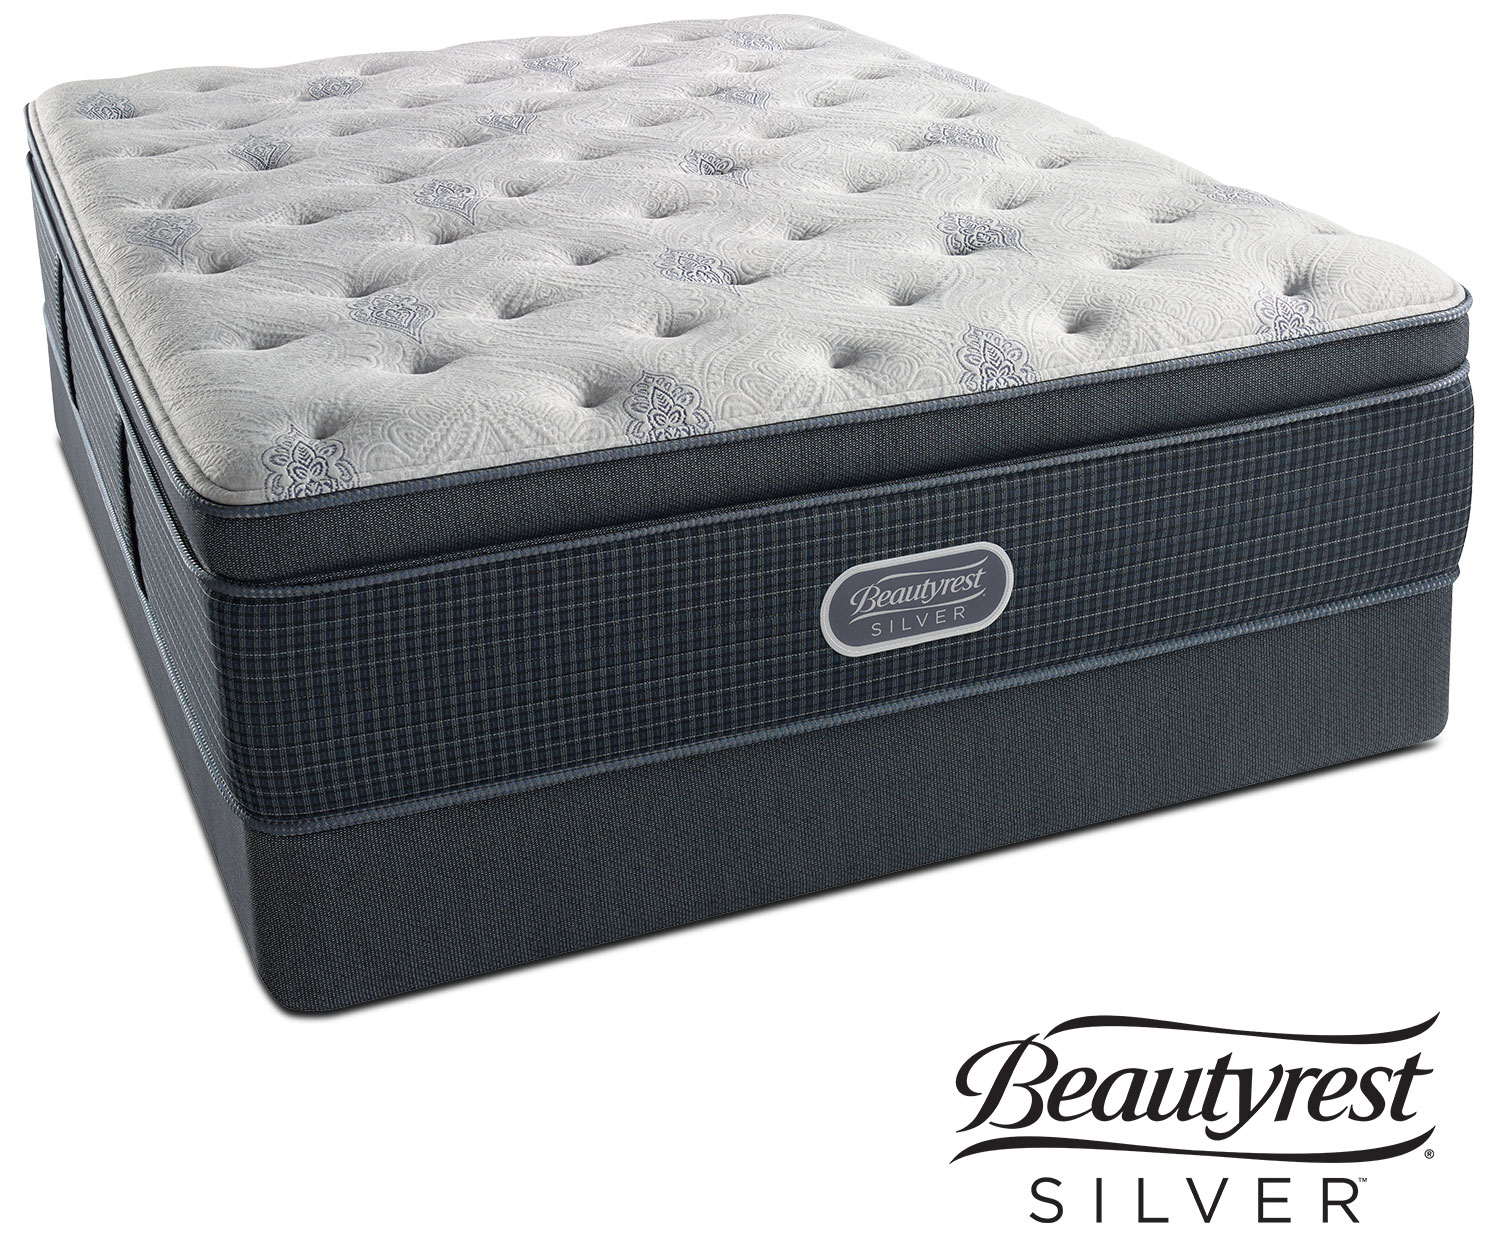 Mattresses and Bedding - Crystal Ridge Luxury Firm Pillowtop King Mattress and Split Foundation Set